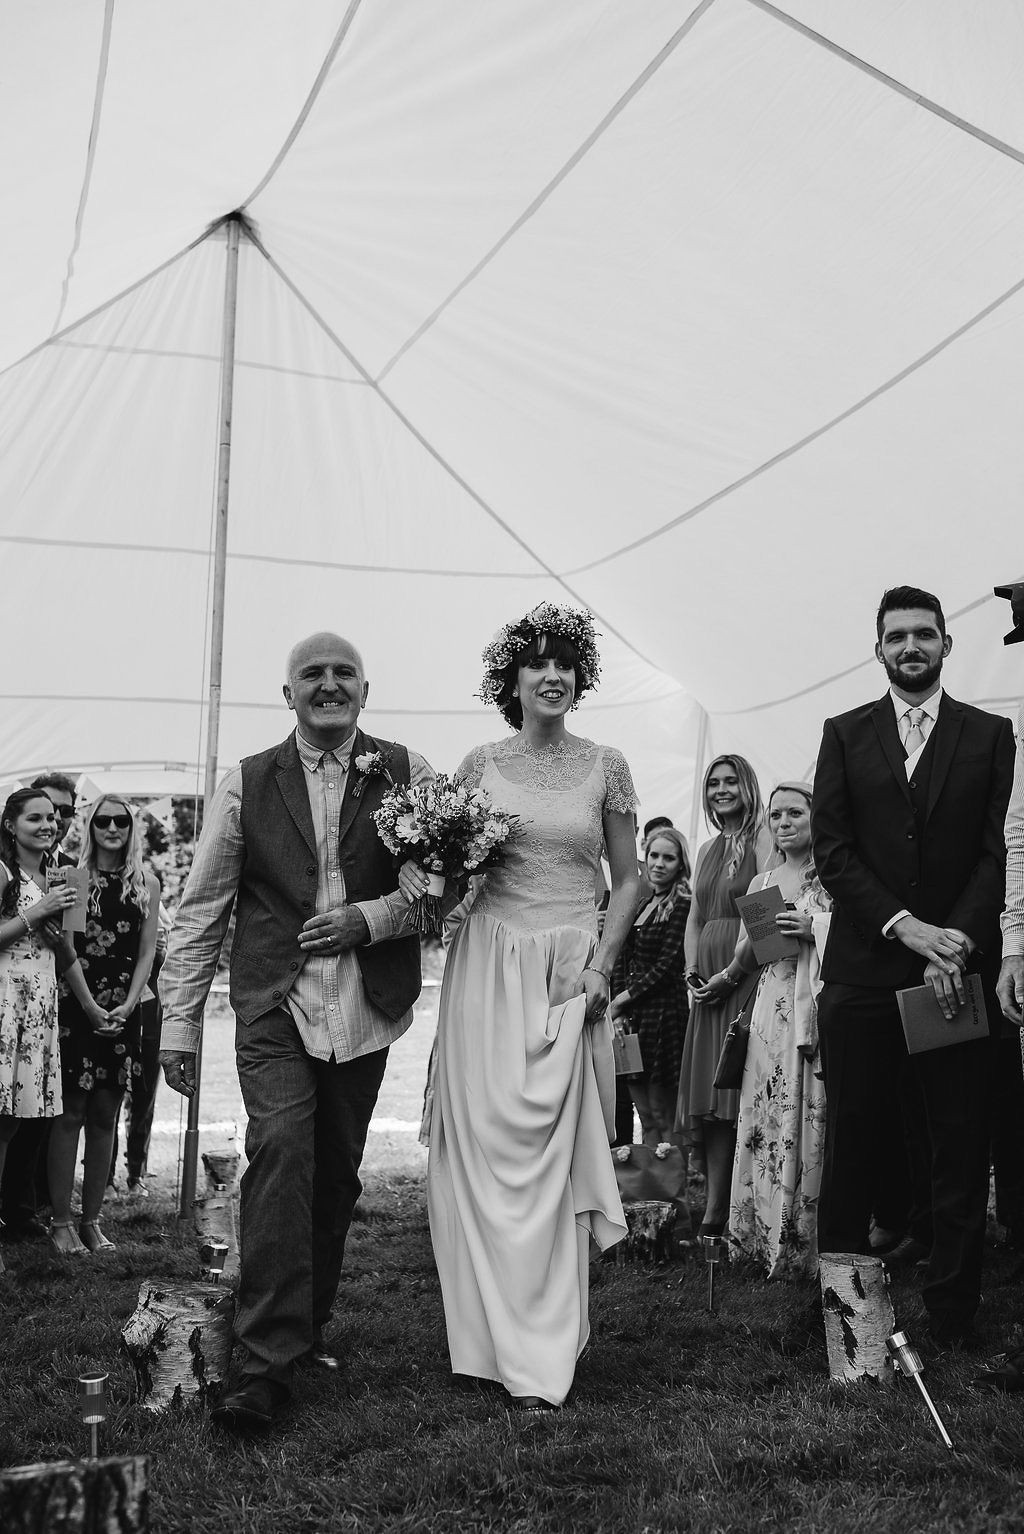 Wedding Ceremony | Wedding Photography | Swansea, South Wales | Down to Earth | Our Beautiful Adventure Photography